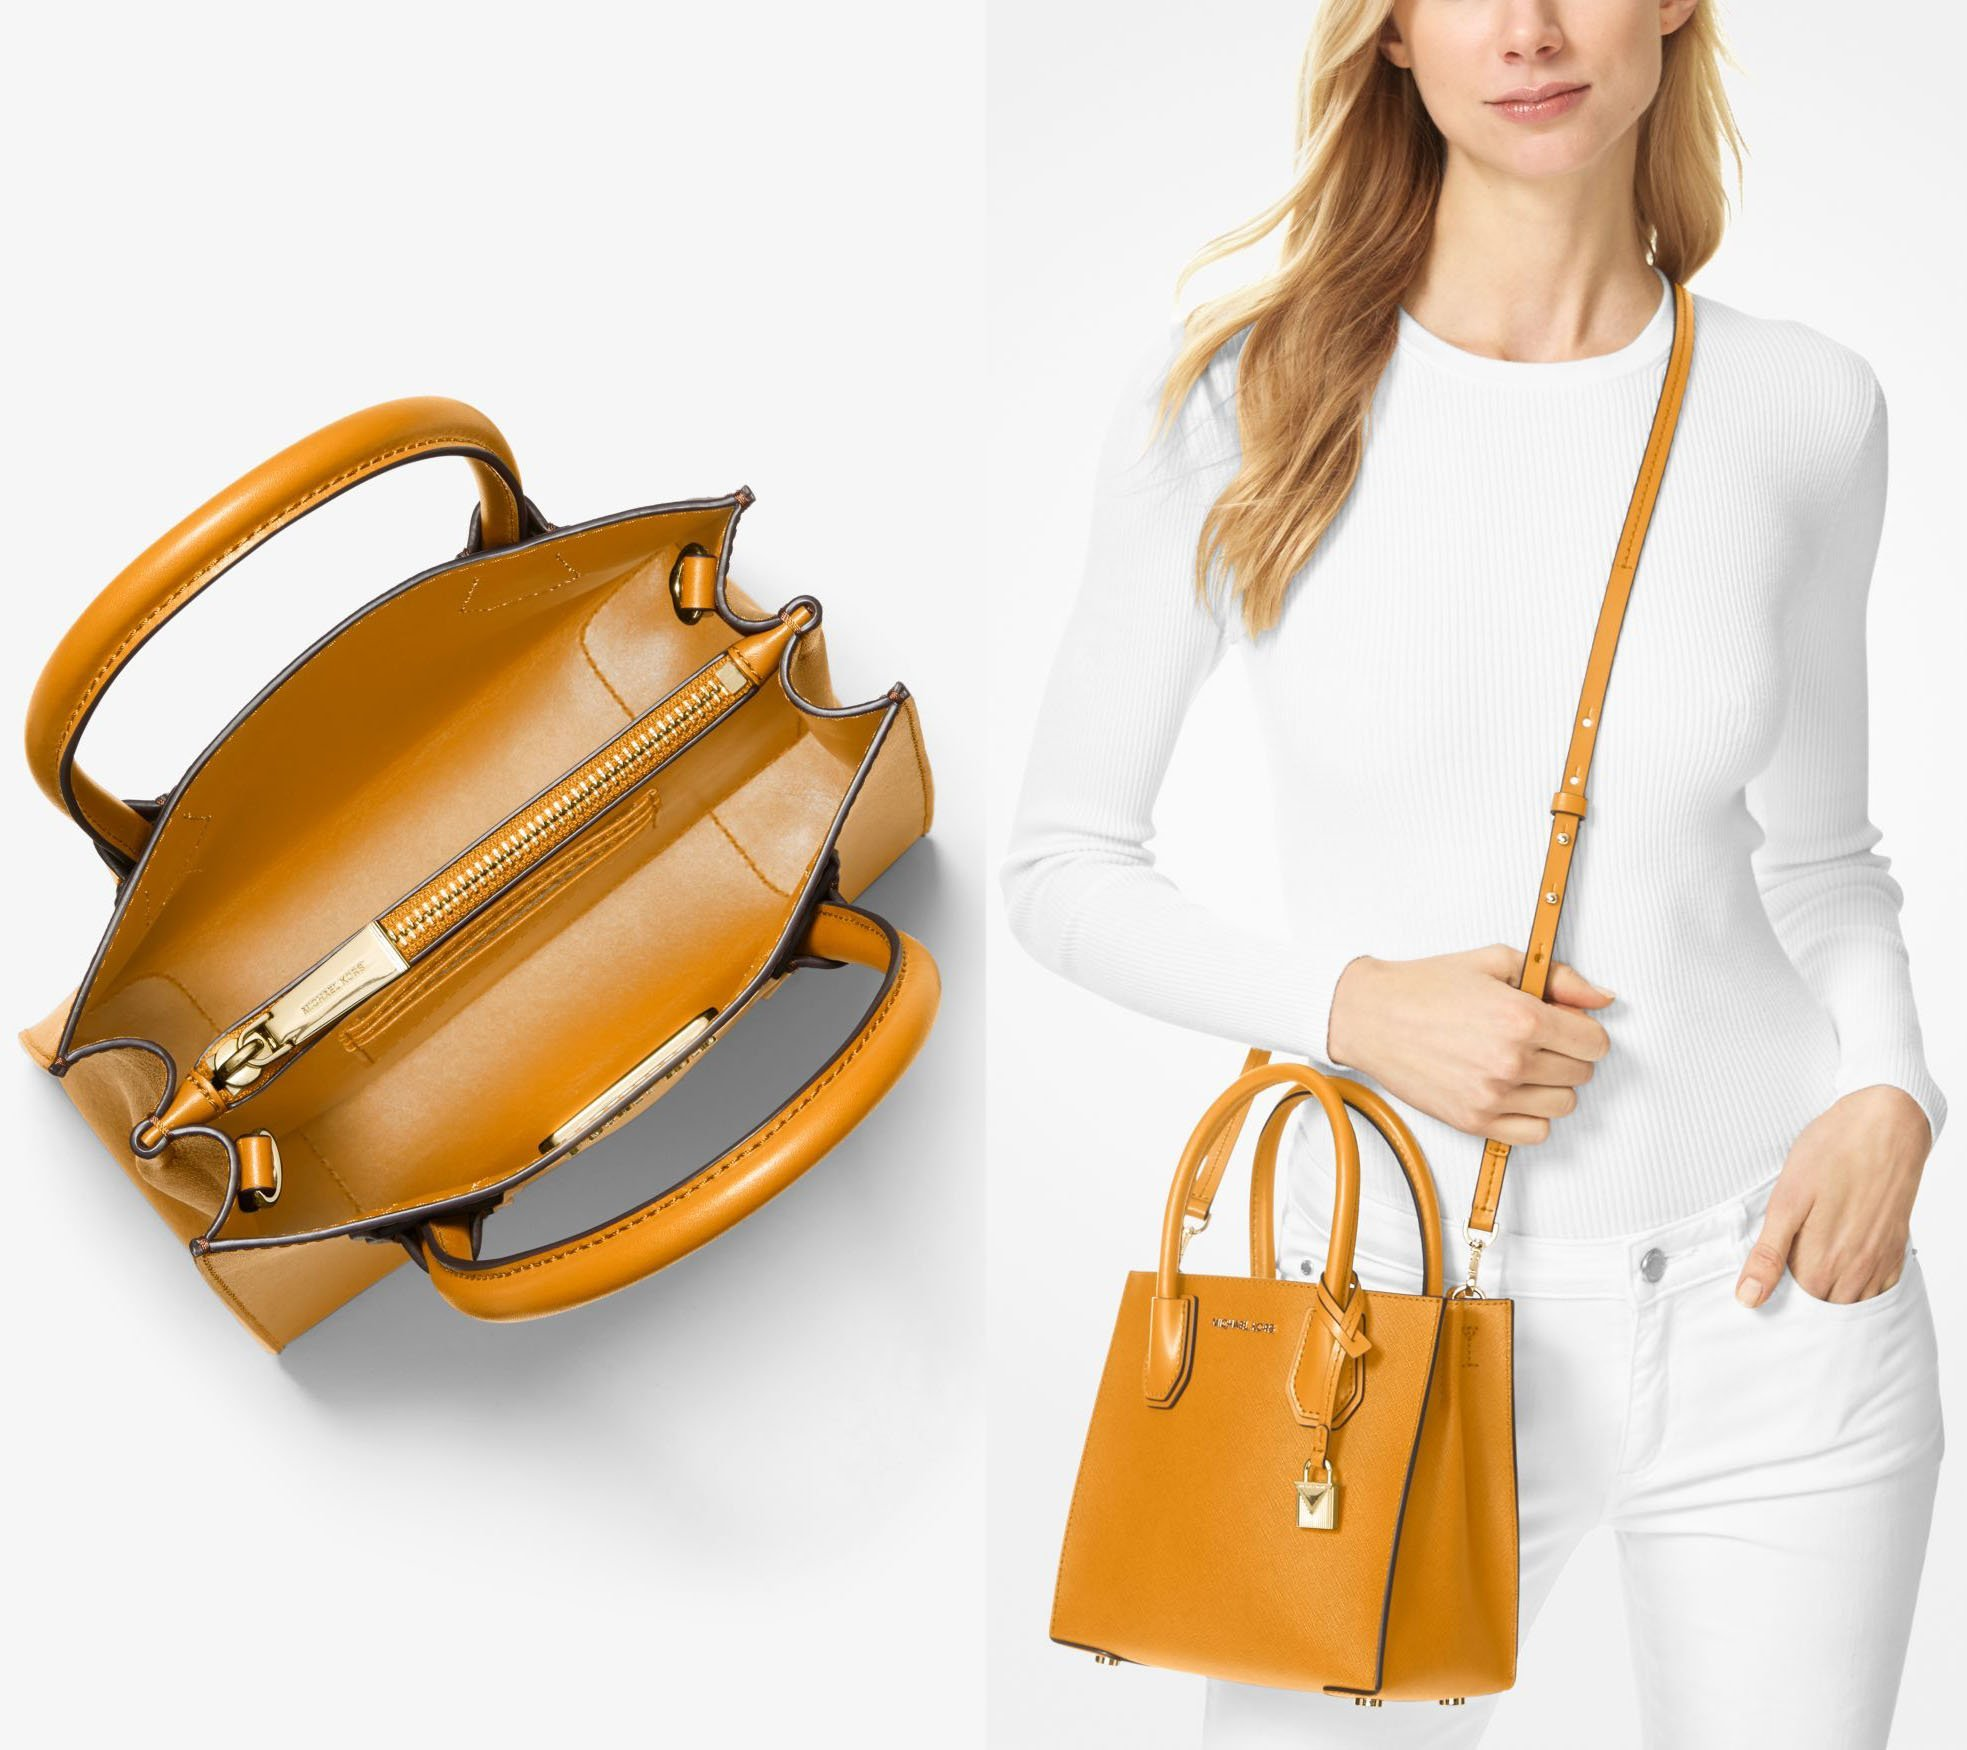 It features a detachable crossbody strap and double top handles, allowing you to carry it in two ways